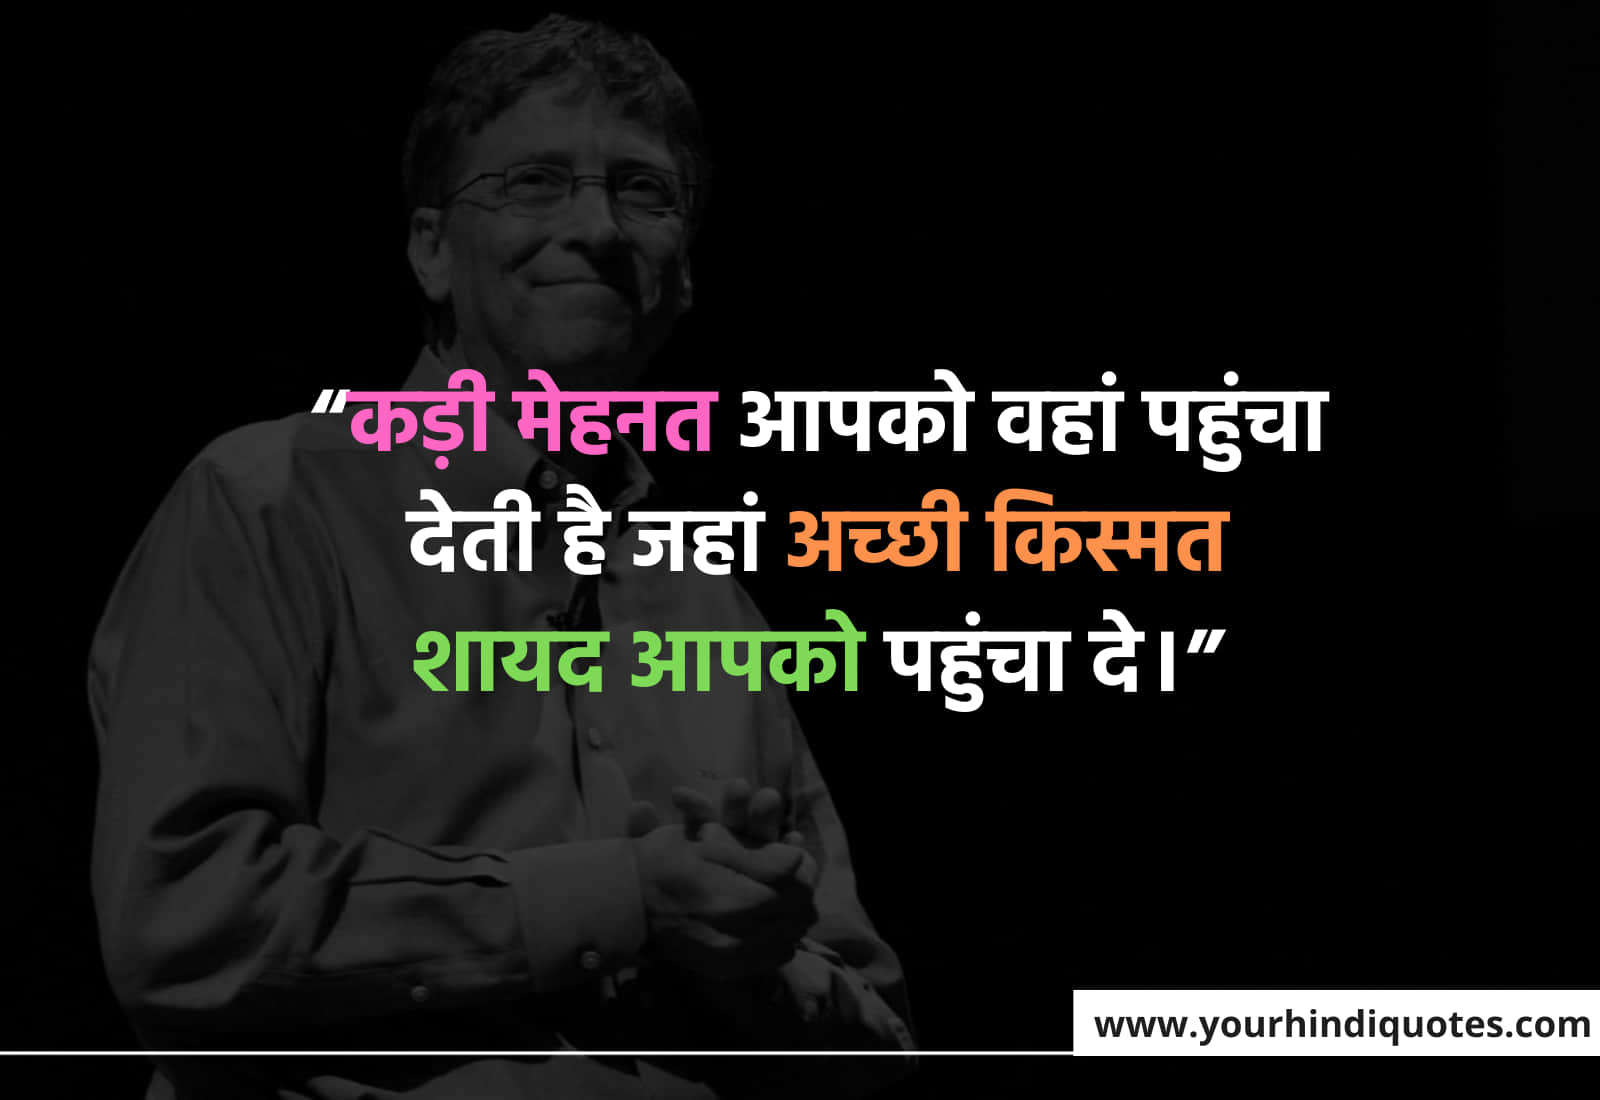 Hindi Students Quotes About Life